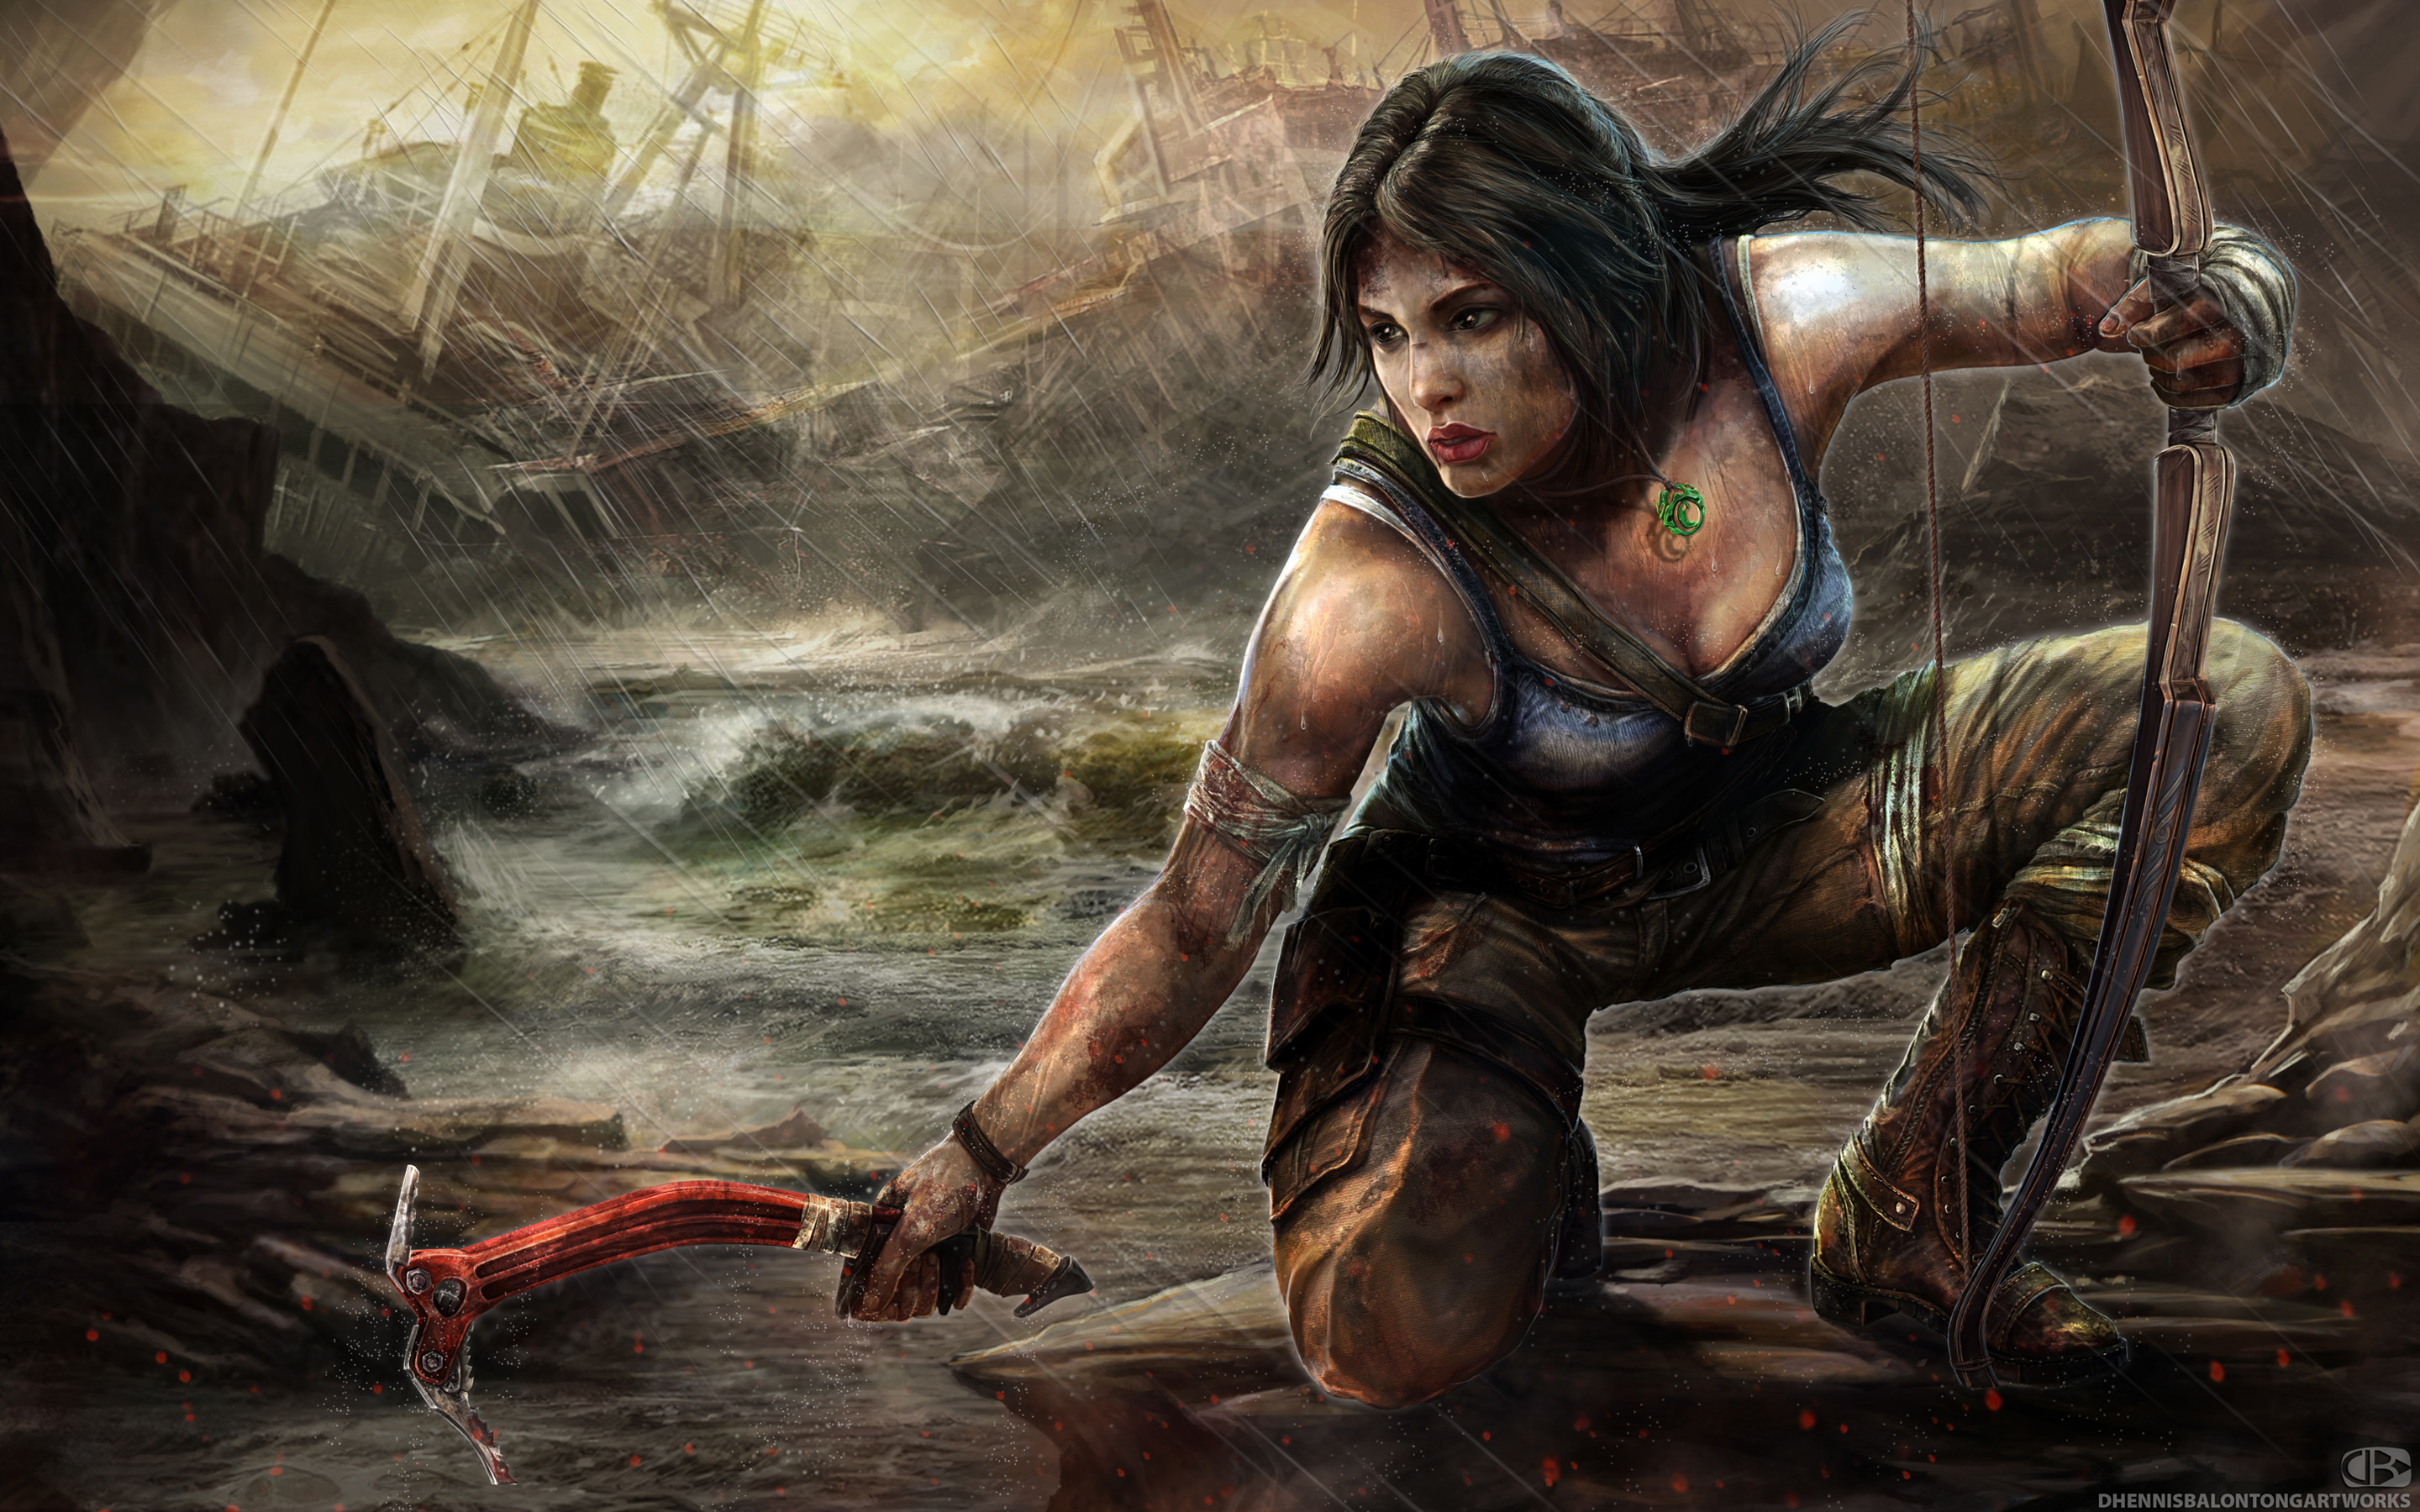 Lara Croft Tomb Raider 2013 Artwork HD Wallpaper #4347 1543